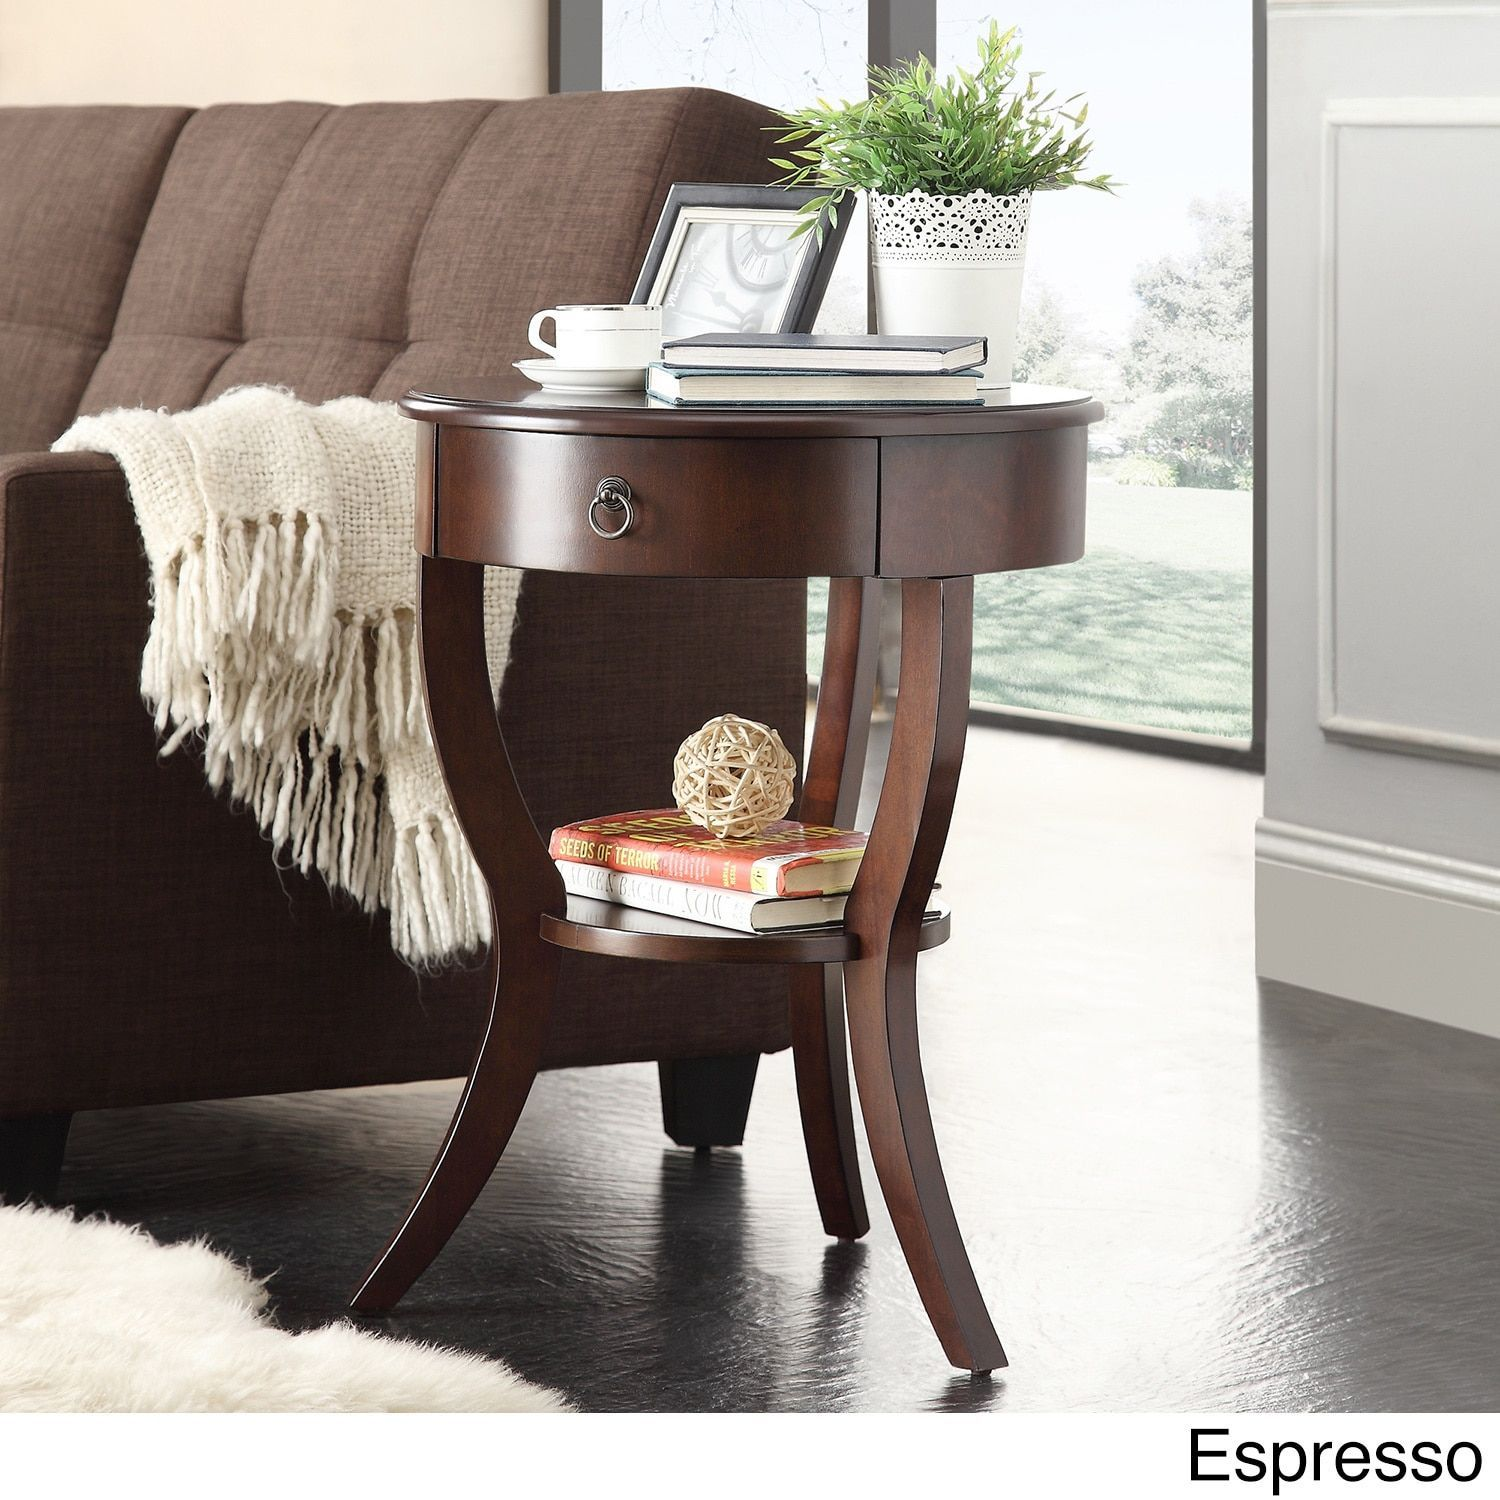 Burkhardt Tripod Round Wood Accent Table by iNSPIRE Q Bold (